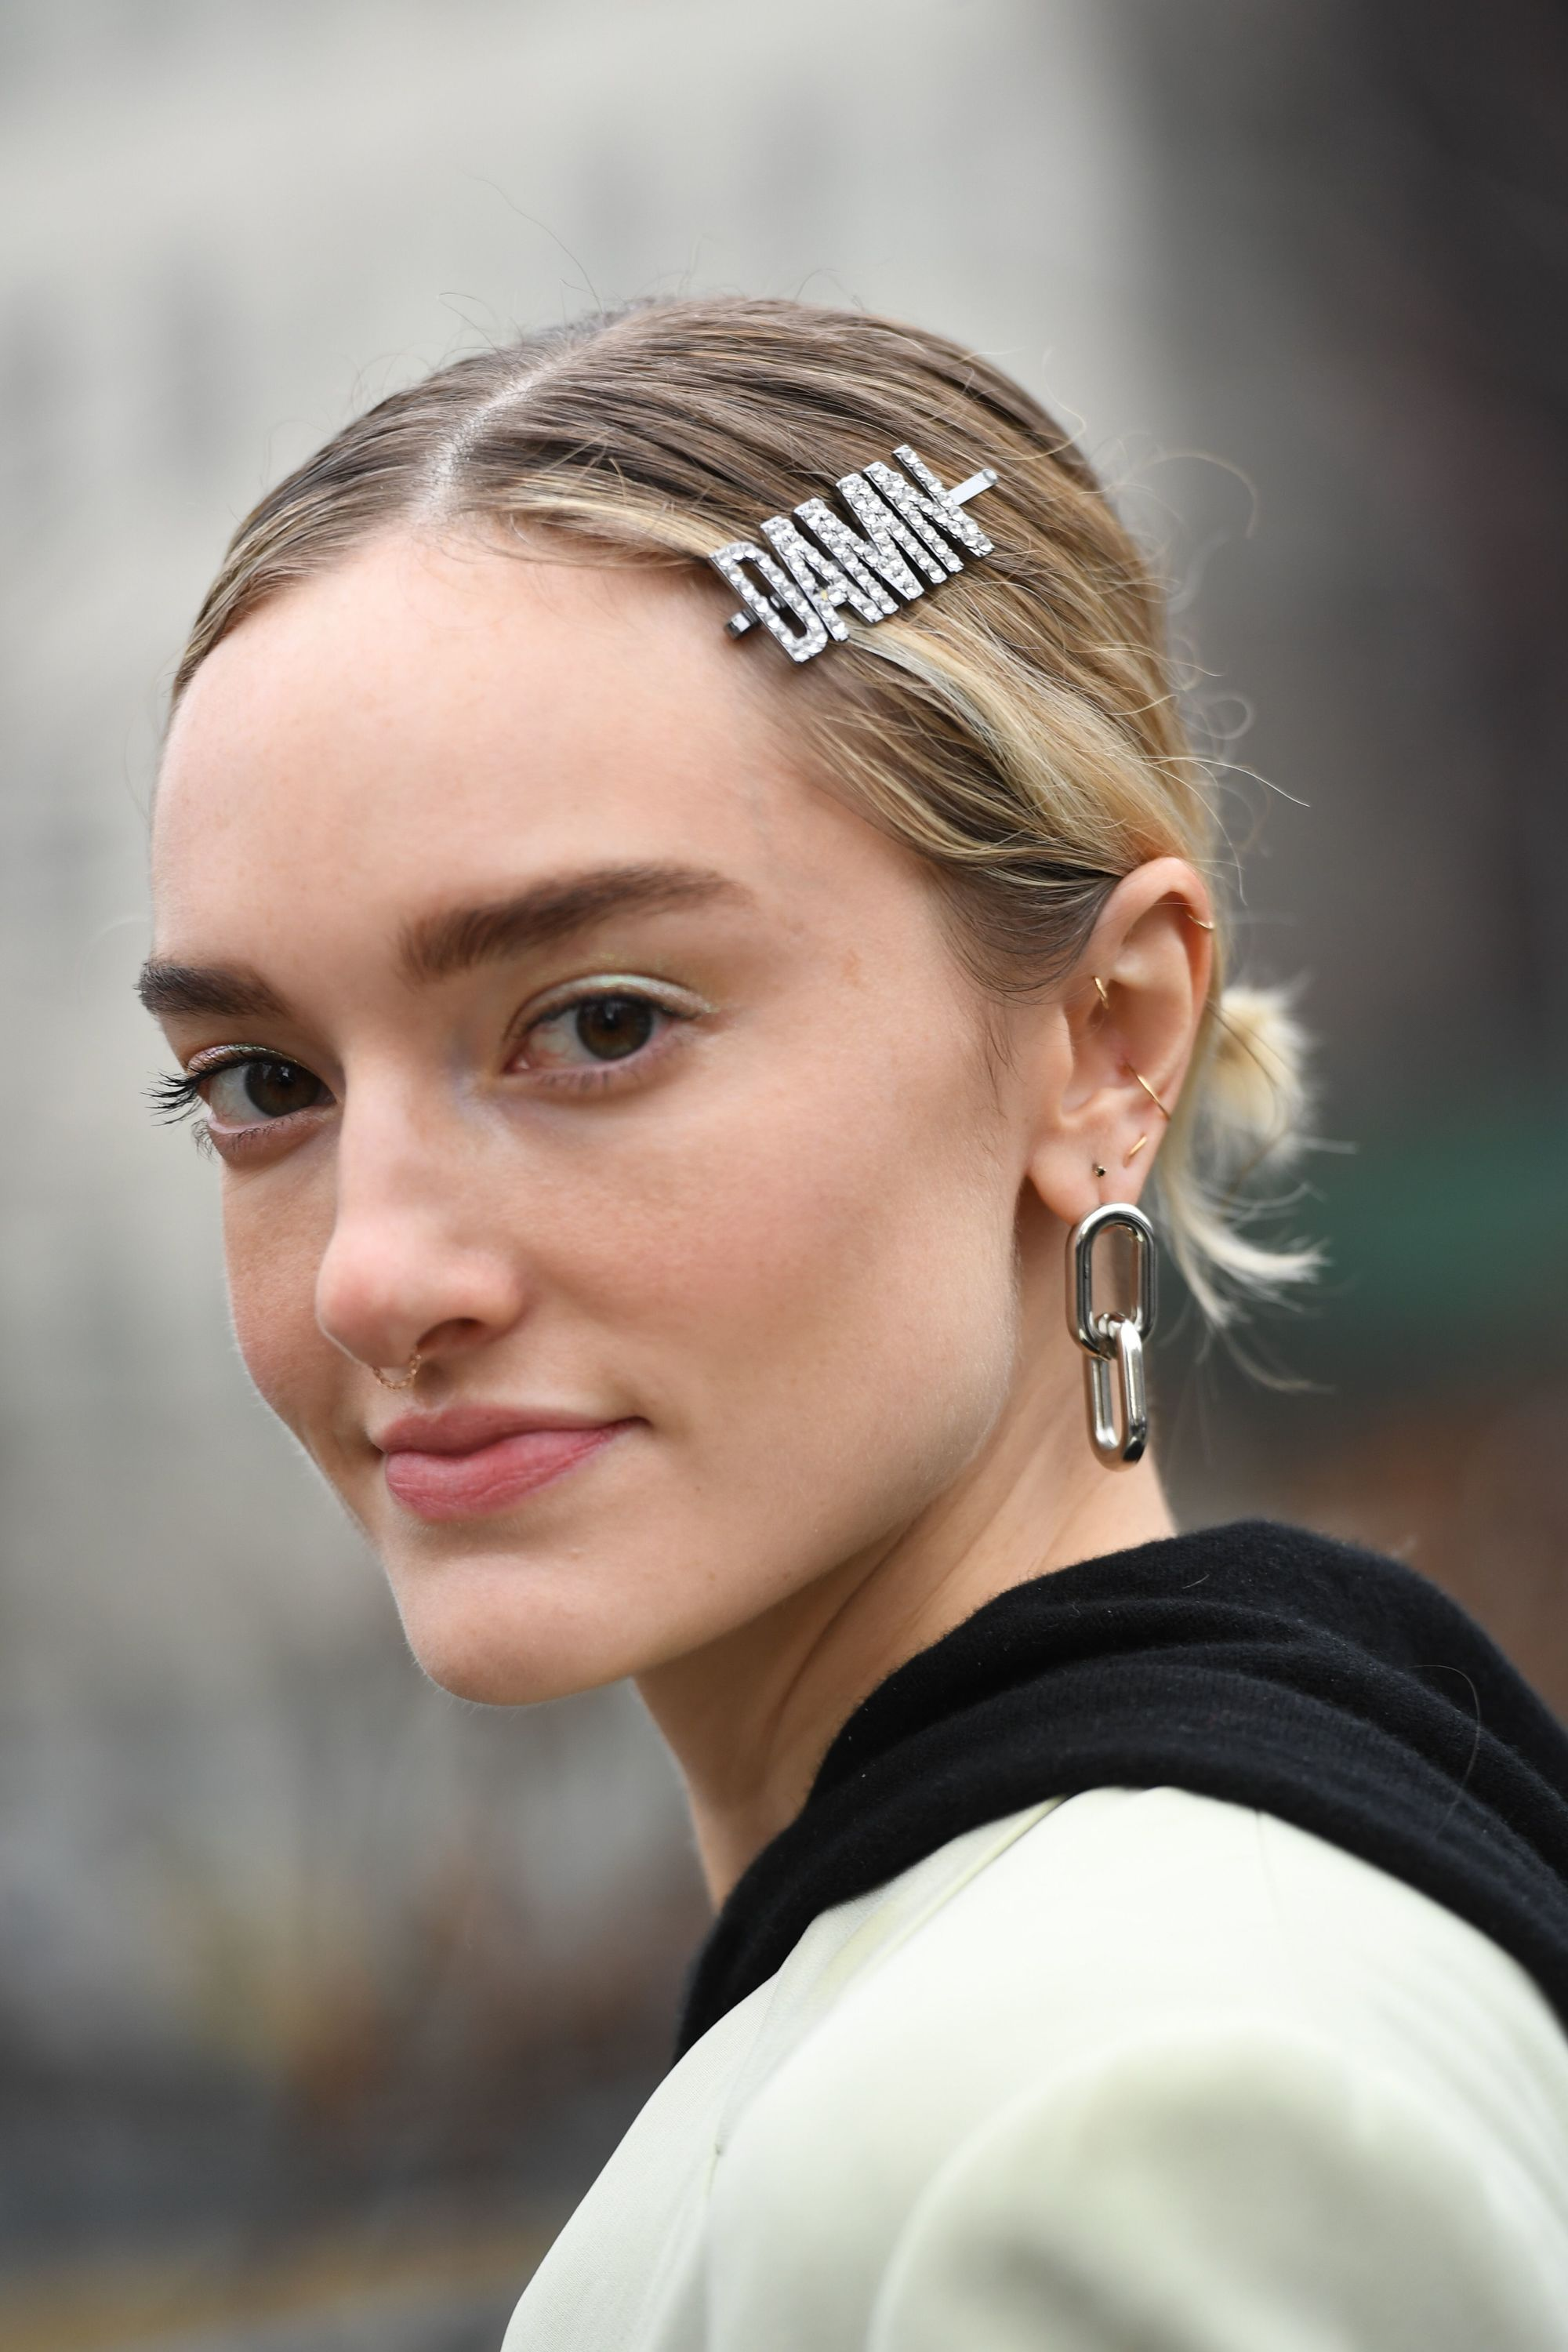 b8b8b614fe08 2019 hair accessories  Close-up street style photo of a blonde woman with  her